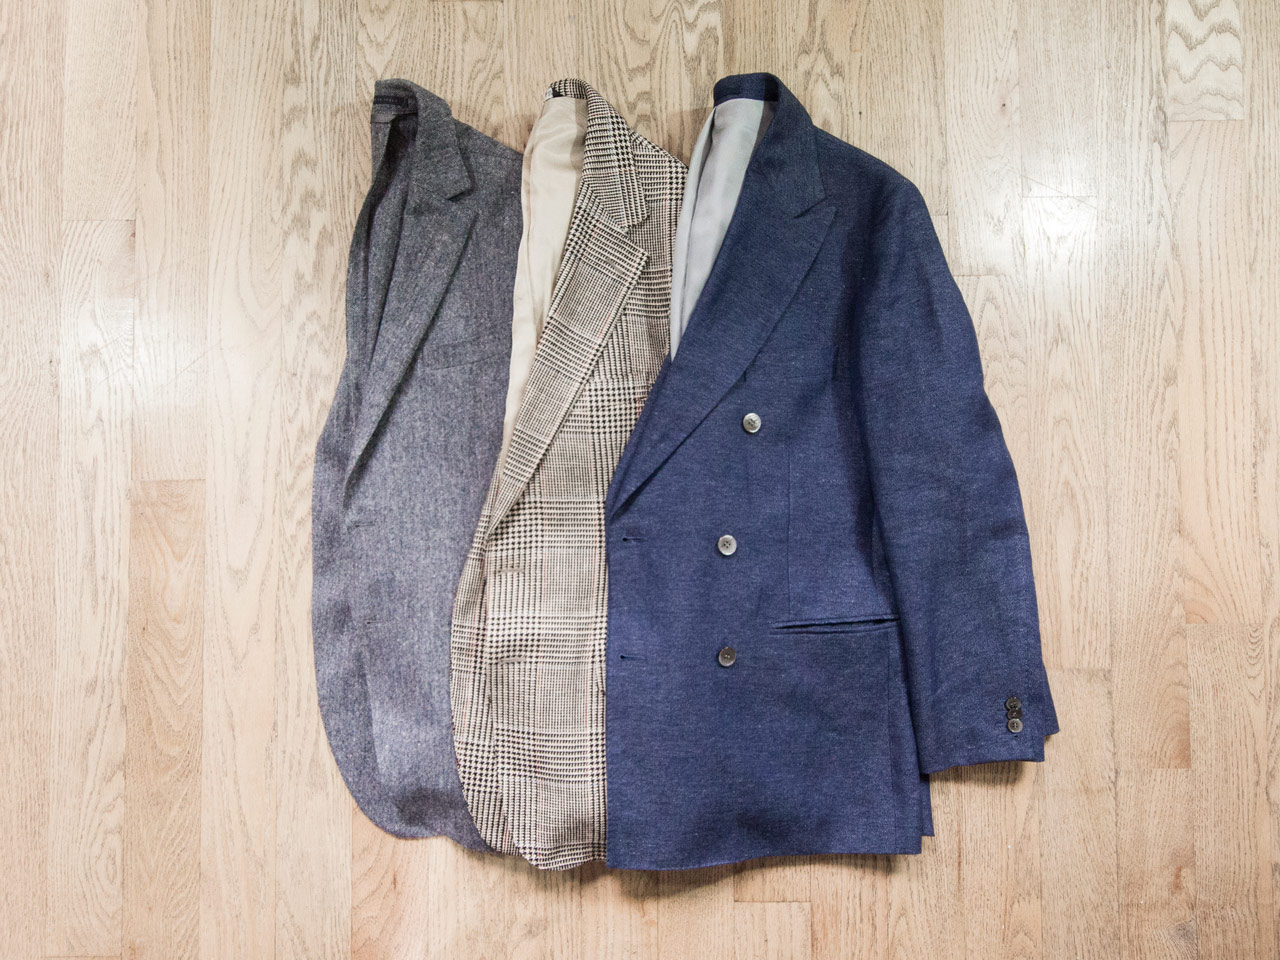 effortless essentials minimalist wardrobe - sportcoats